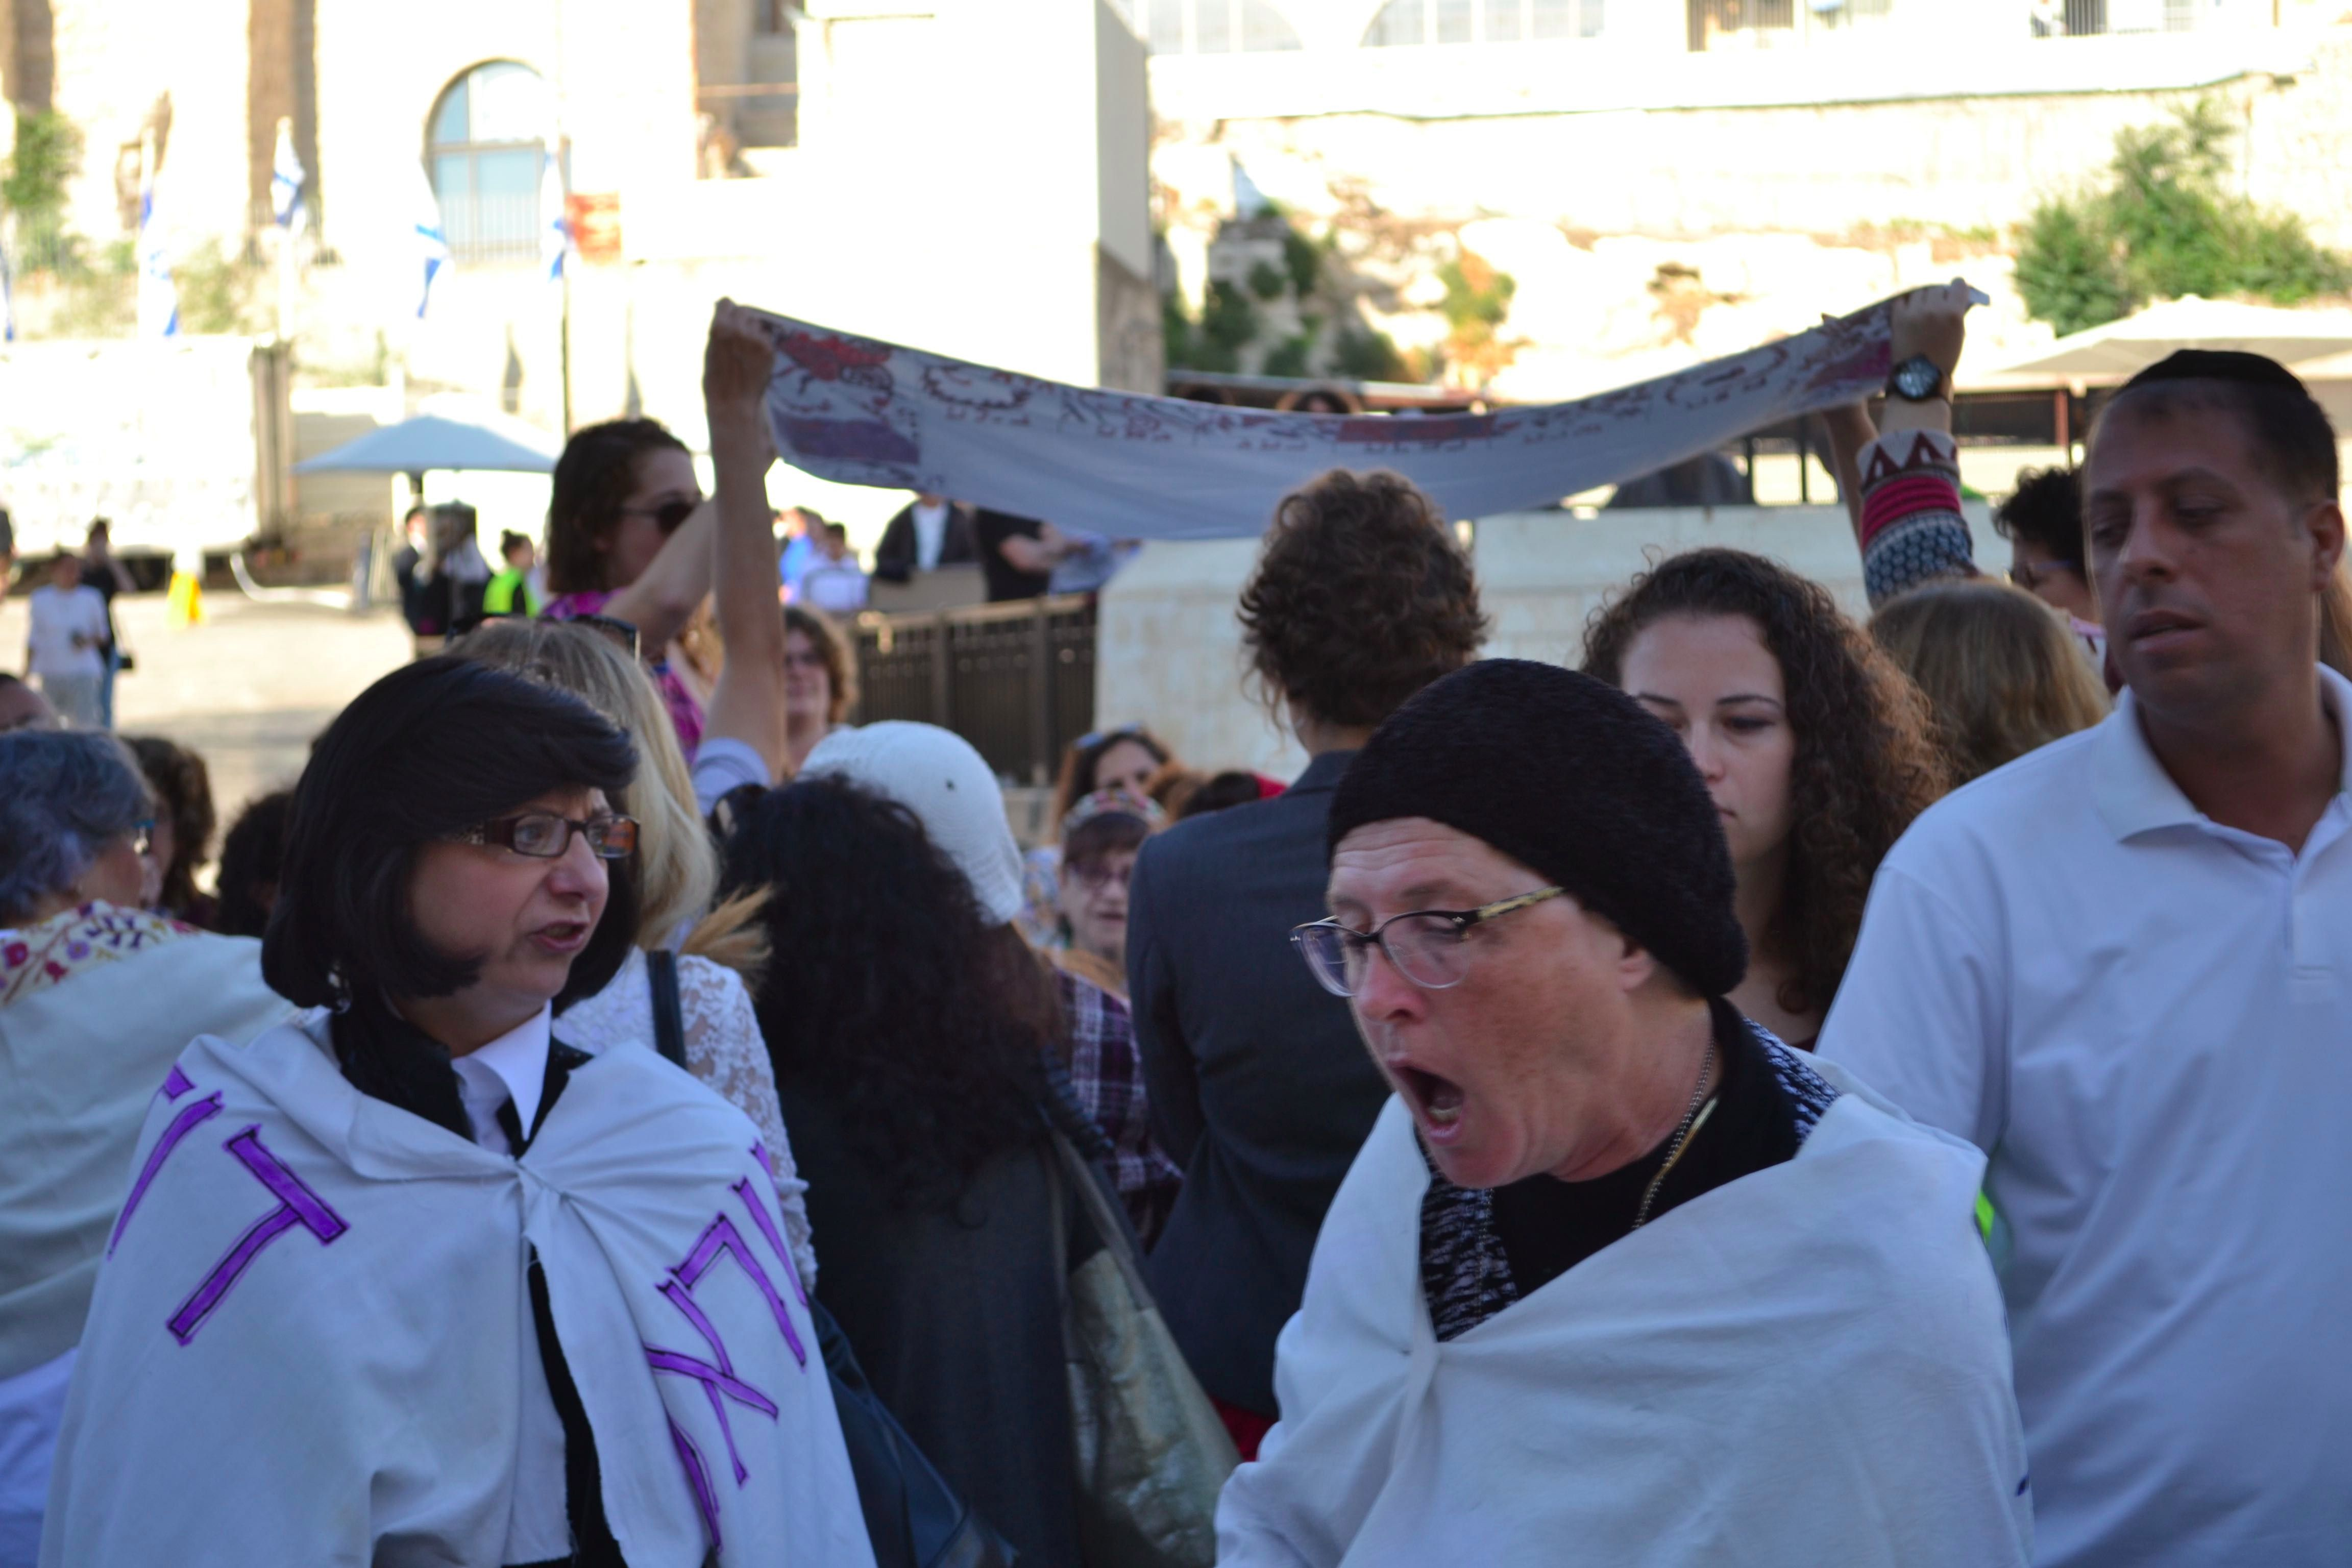 Ultra-Orthodox women wrapped in protest signs yell as Women of the Wall conducts a bat mitzvah in the background on September 4.